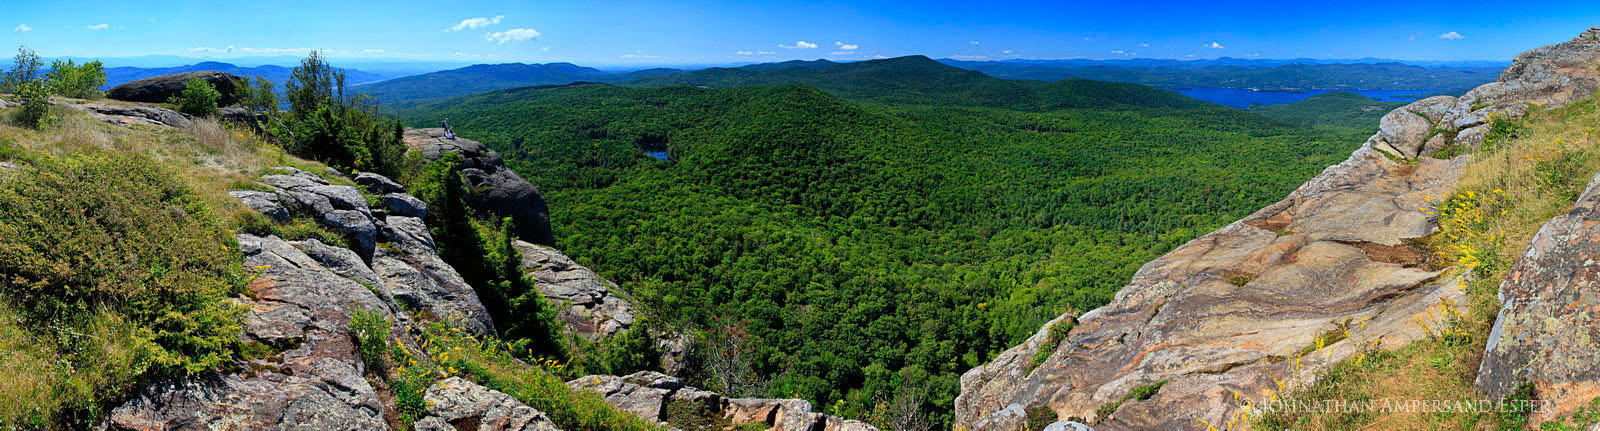 Sleeping Beauty Mt, Lake George, panorama, hikers, couple, dog, pet, hiking, vista, enjoying, views, day hike, southern, Adirondacks, landscape, clear, warm, New York State, Adirondack Park, Adirondac, photo